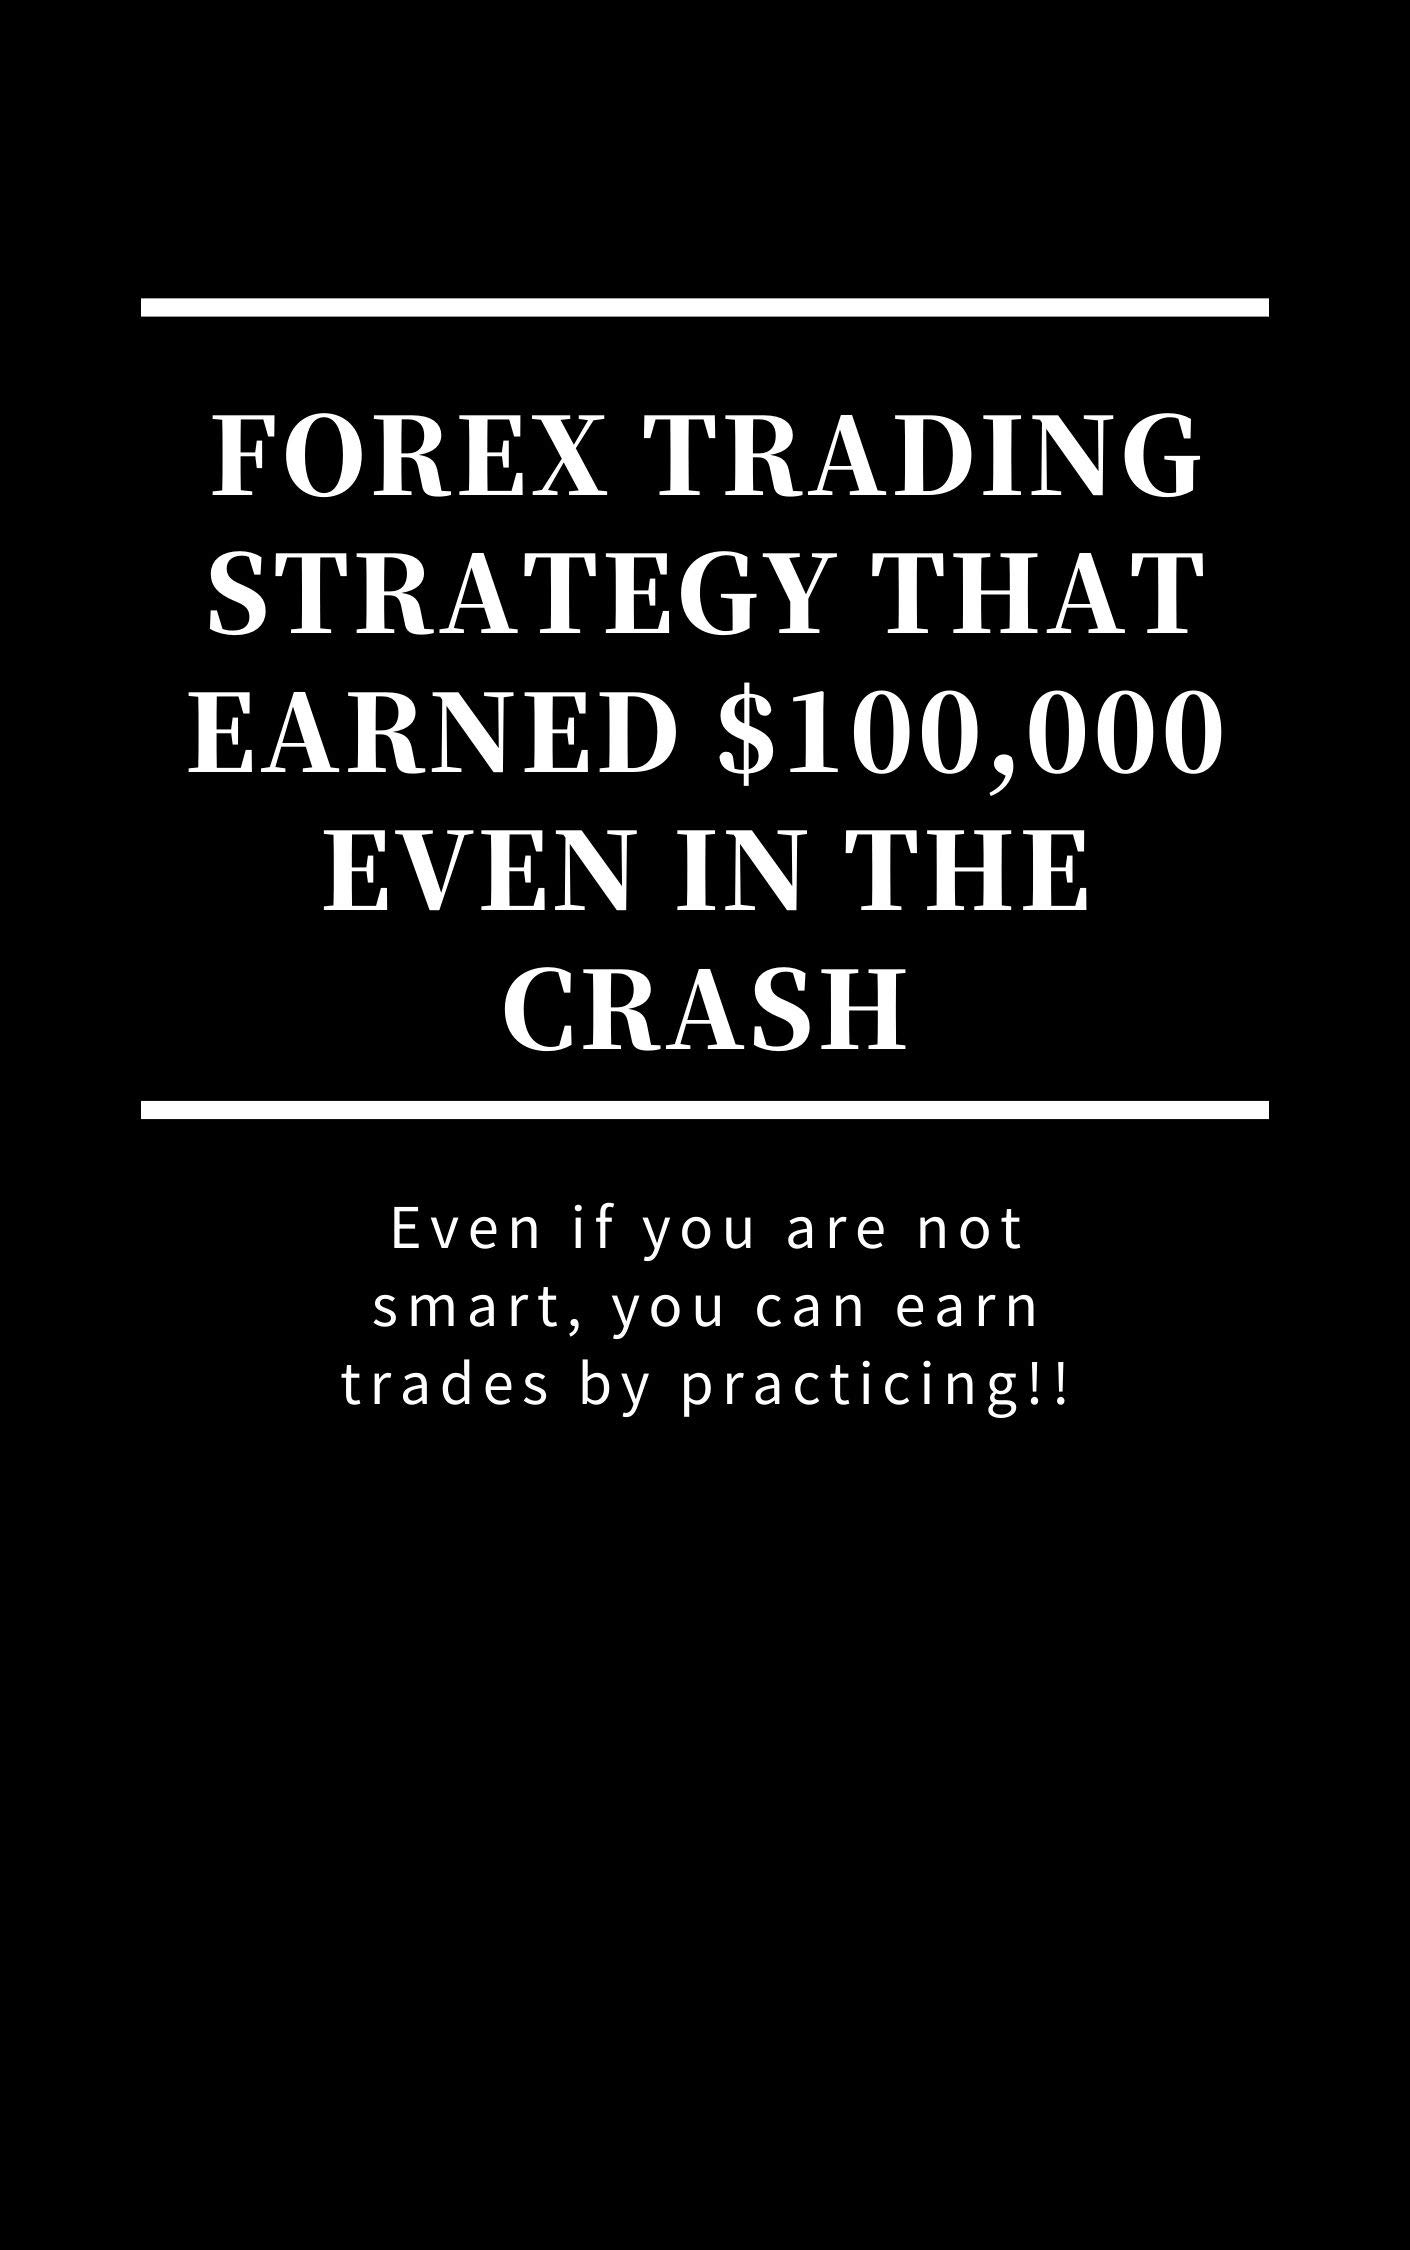 Forex trading strategy that earned $100,000 even in the crash